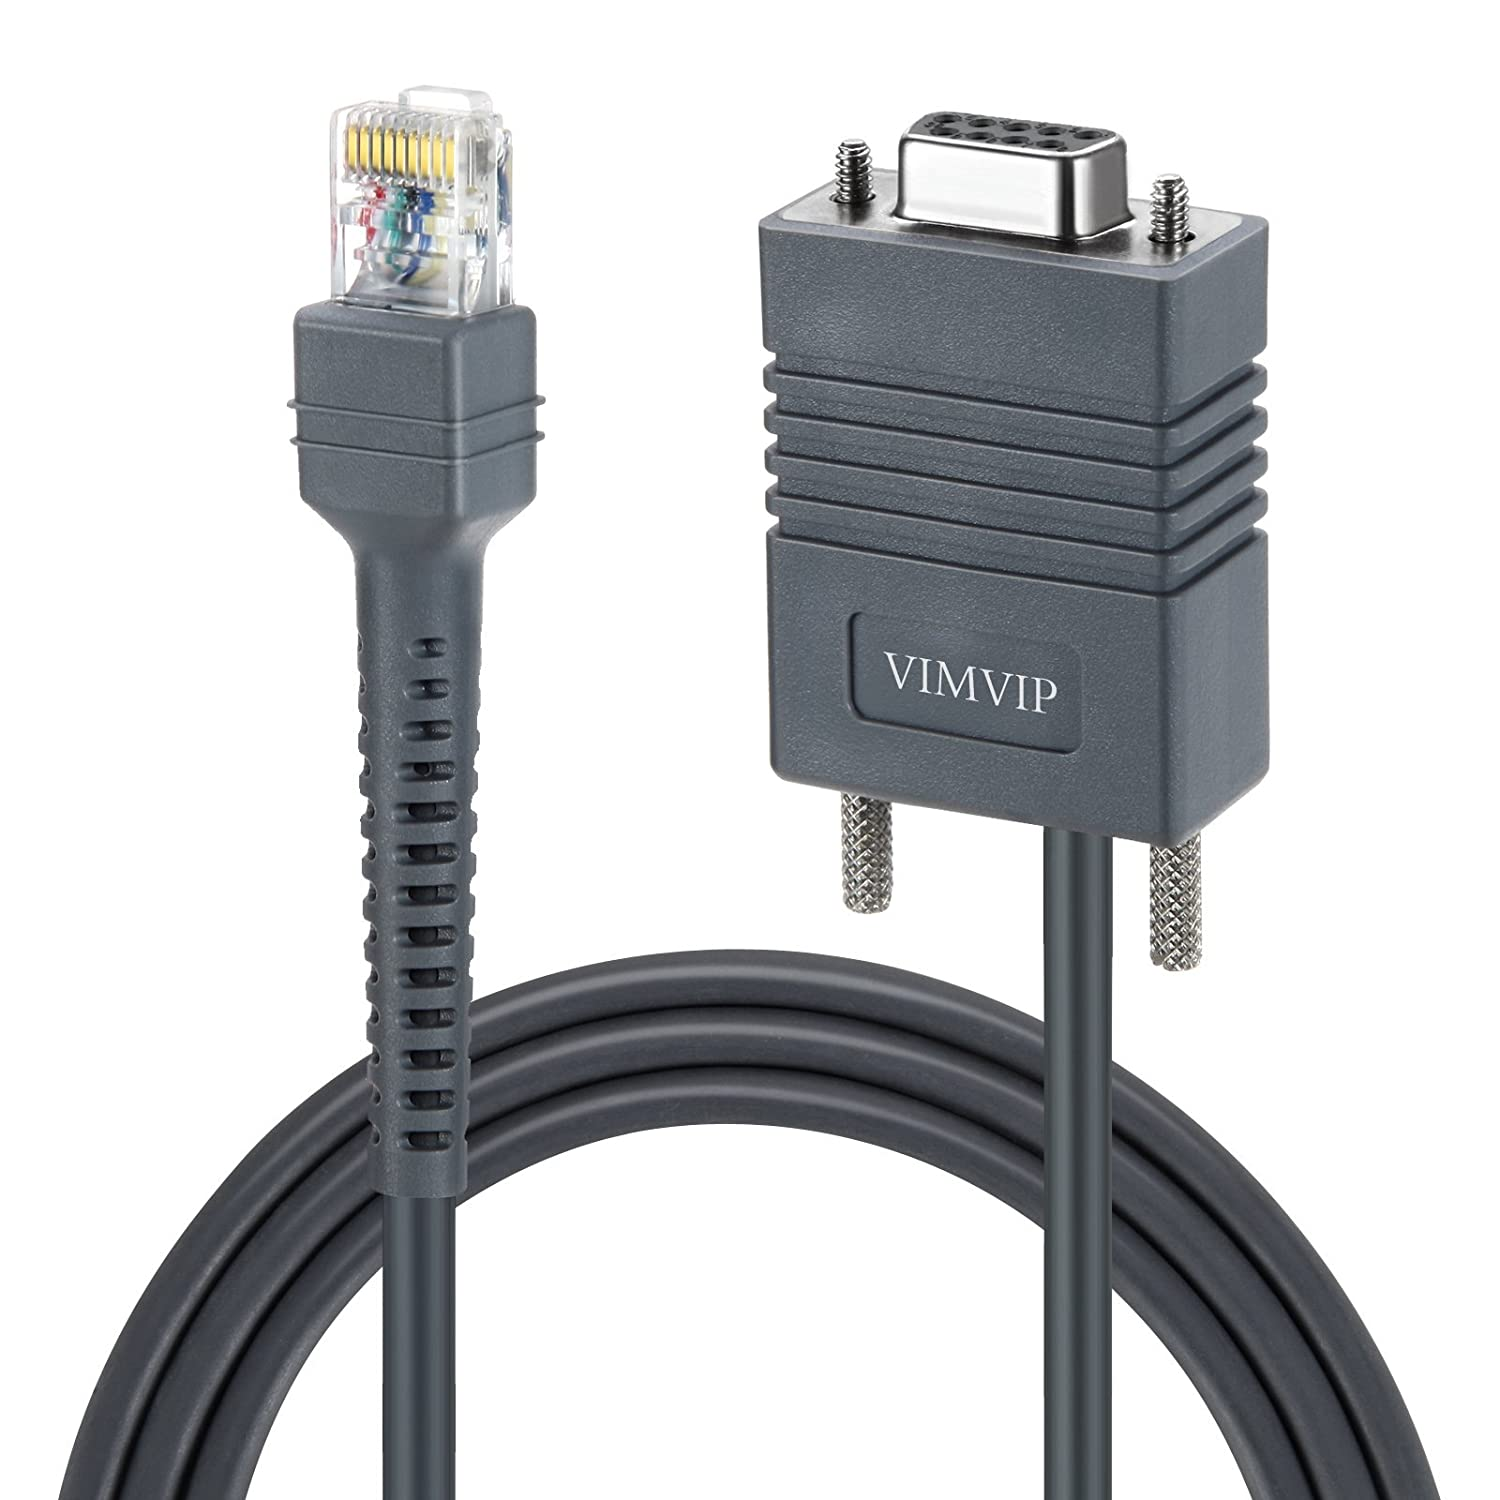 Amazon vimvip 6ft usb cable for symbol ls1203ls2208ls4208 for symbol ls1203ls2208ls4208ls9203ls9208ls7808ls7708ds6708ds6708ls3008ls3408 rj45 to db9 female bar code scanner serial cable electronics biocorpaavc Gallery